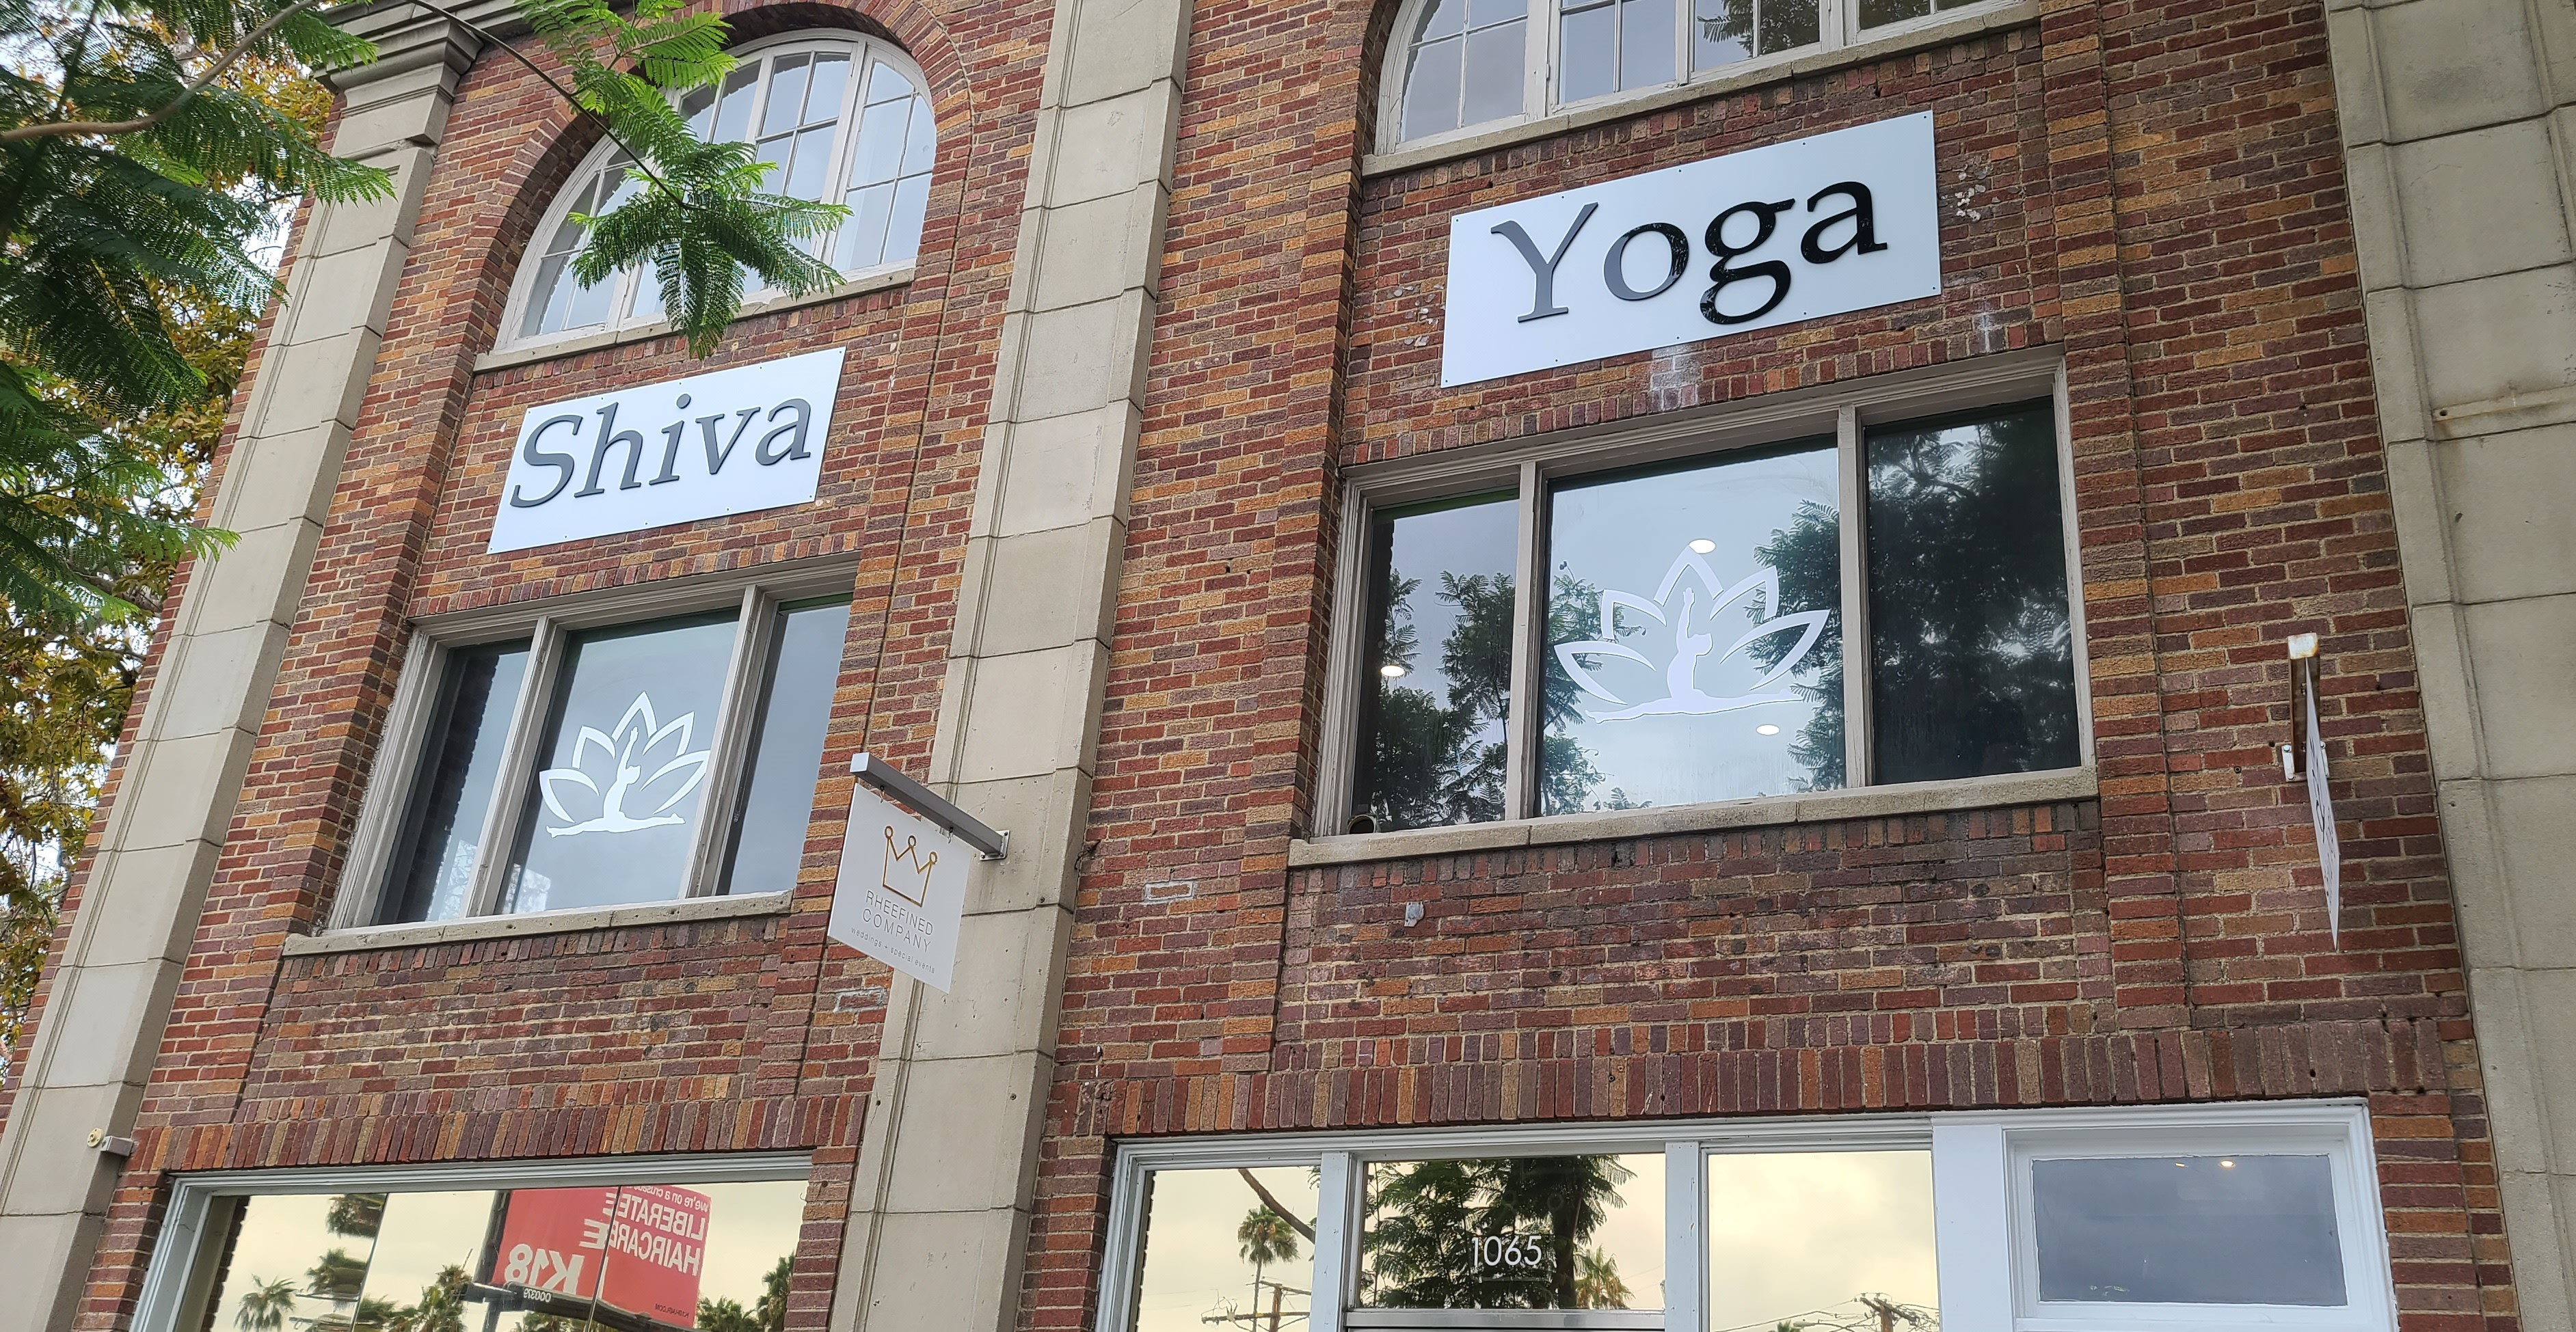 This is the studio sign for Shiva Yoga's West Hollywood establishment, composed of acrylic letters on a metal panel over their entrance.